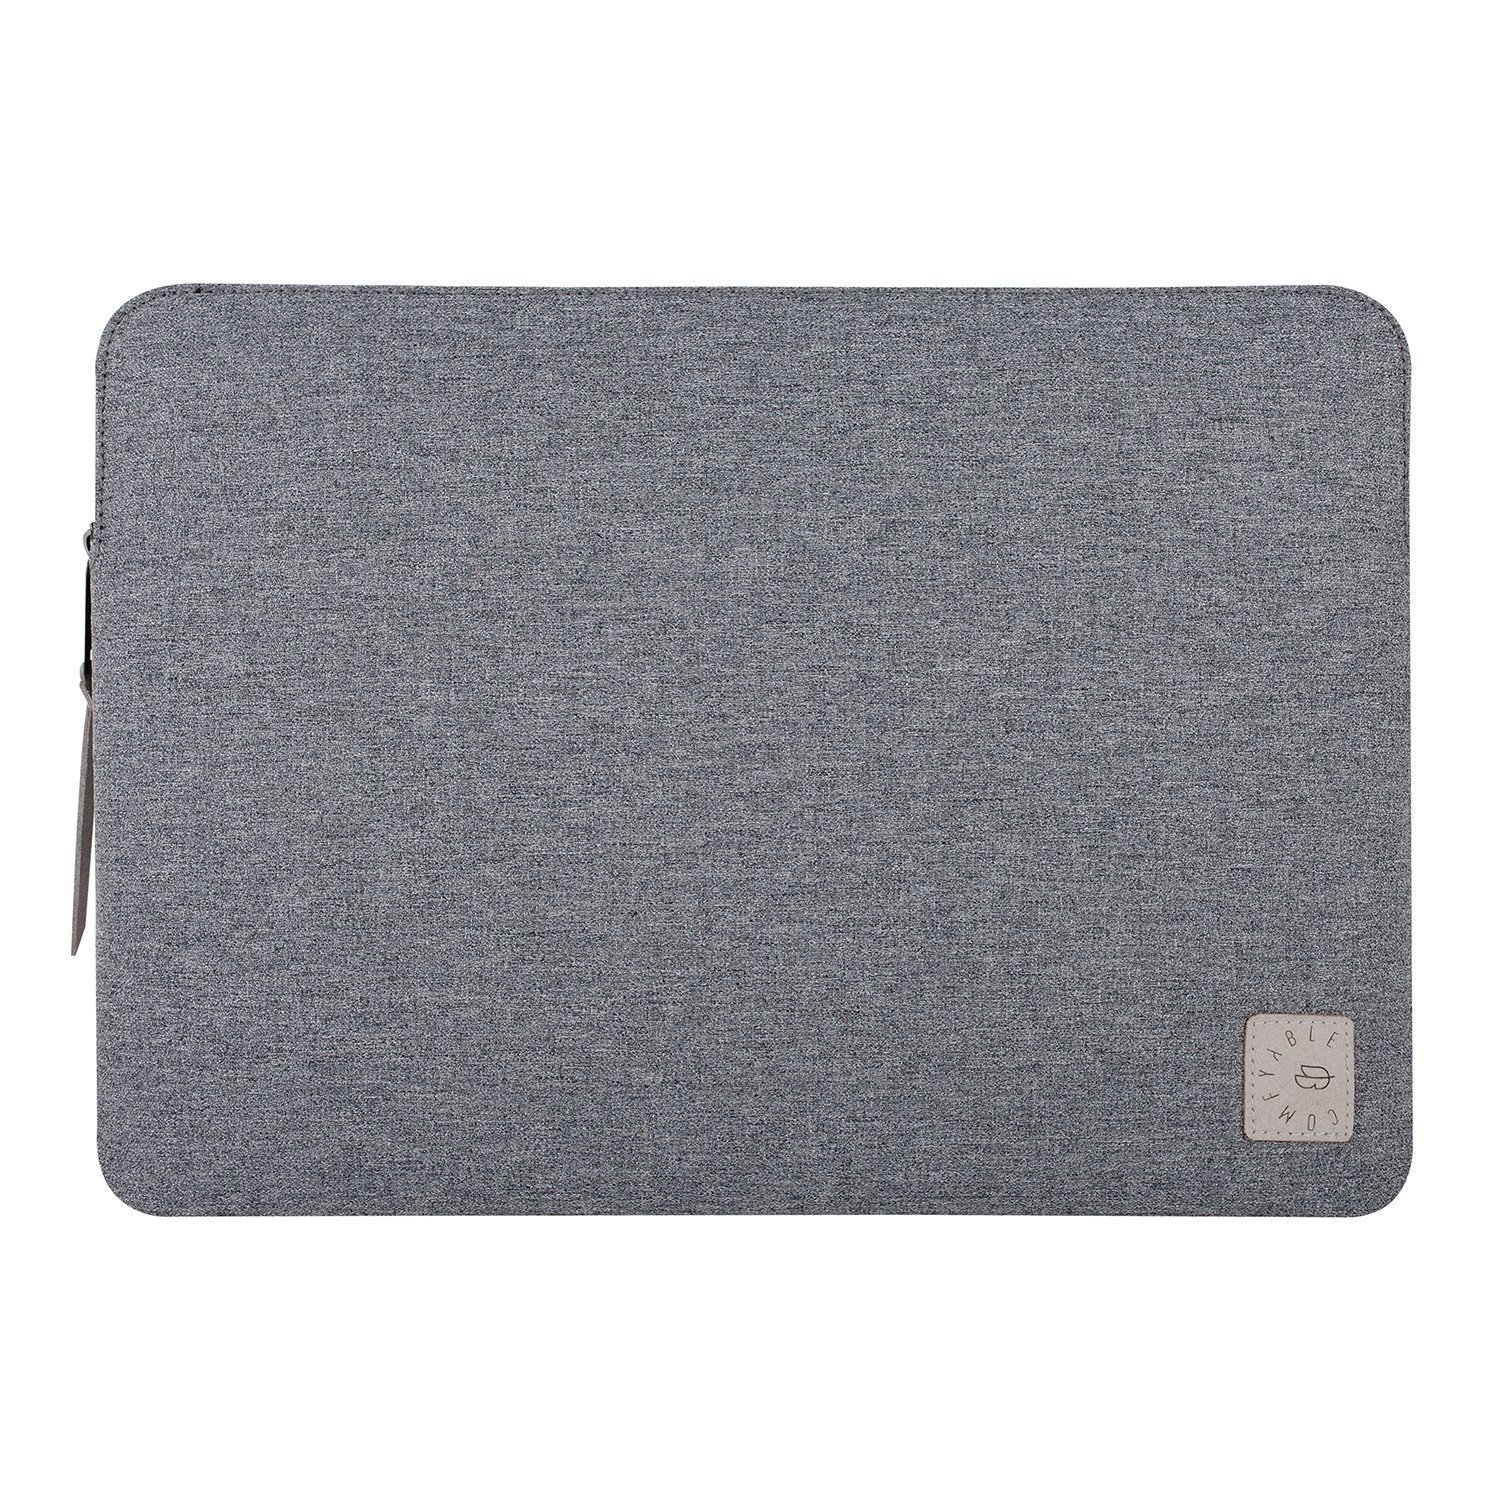 Comfyable Laptop Sleeve for MacBook Pro 15 Inch (2016-2018 Models) | Waterproof Computer Case Provides Safe Storage & Stylish, Sleek Design